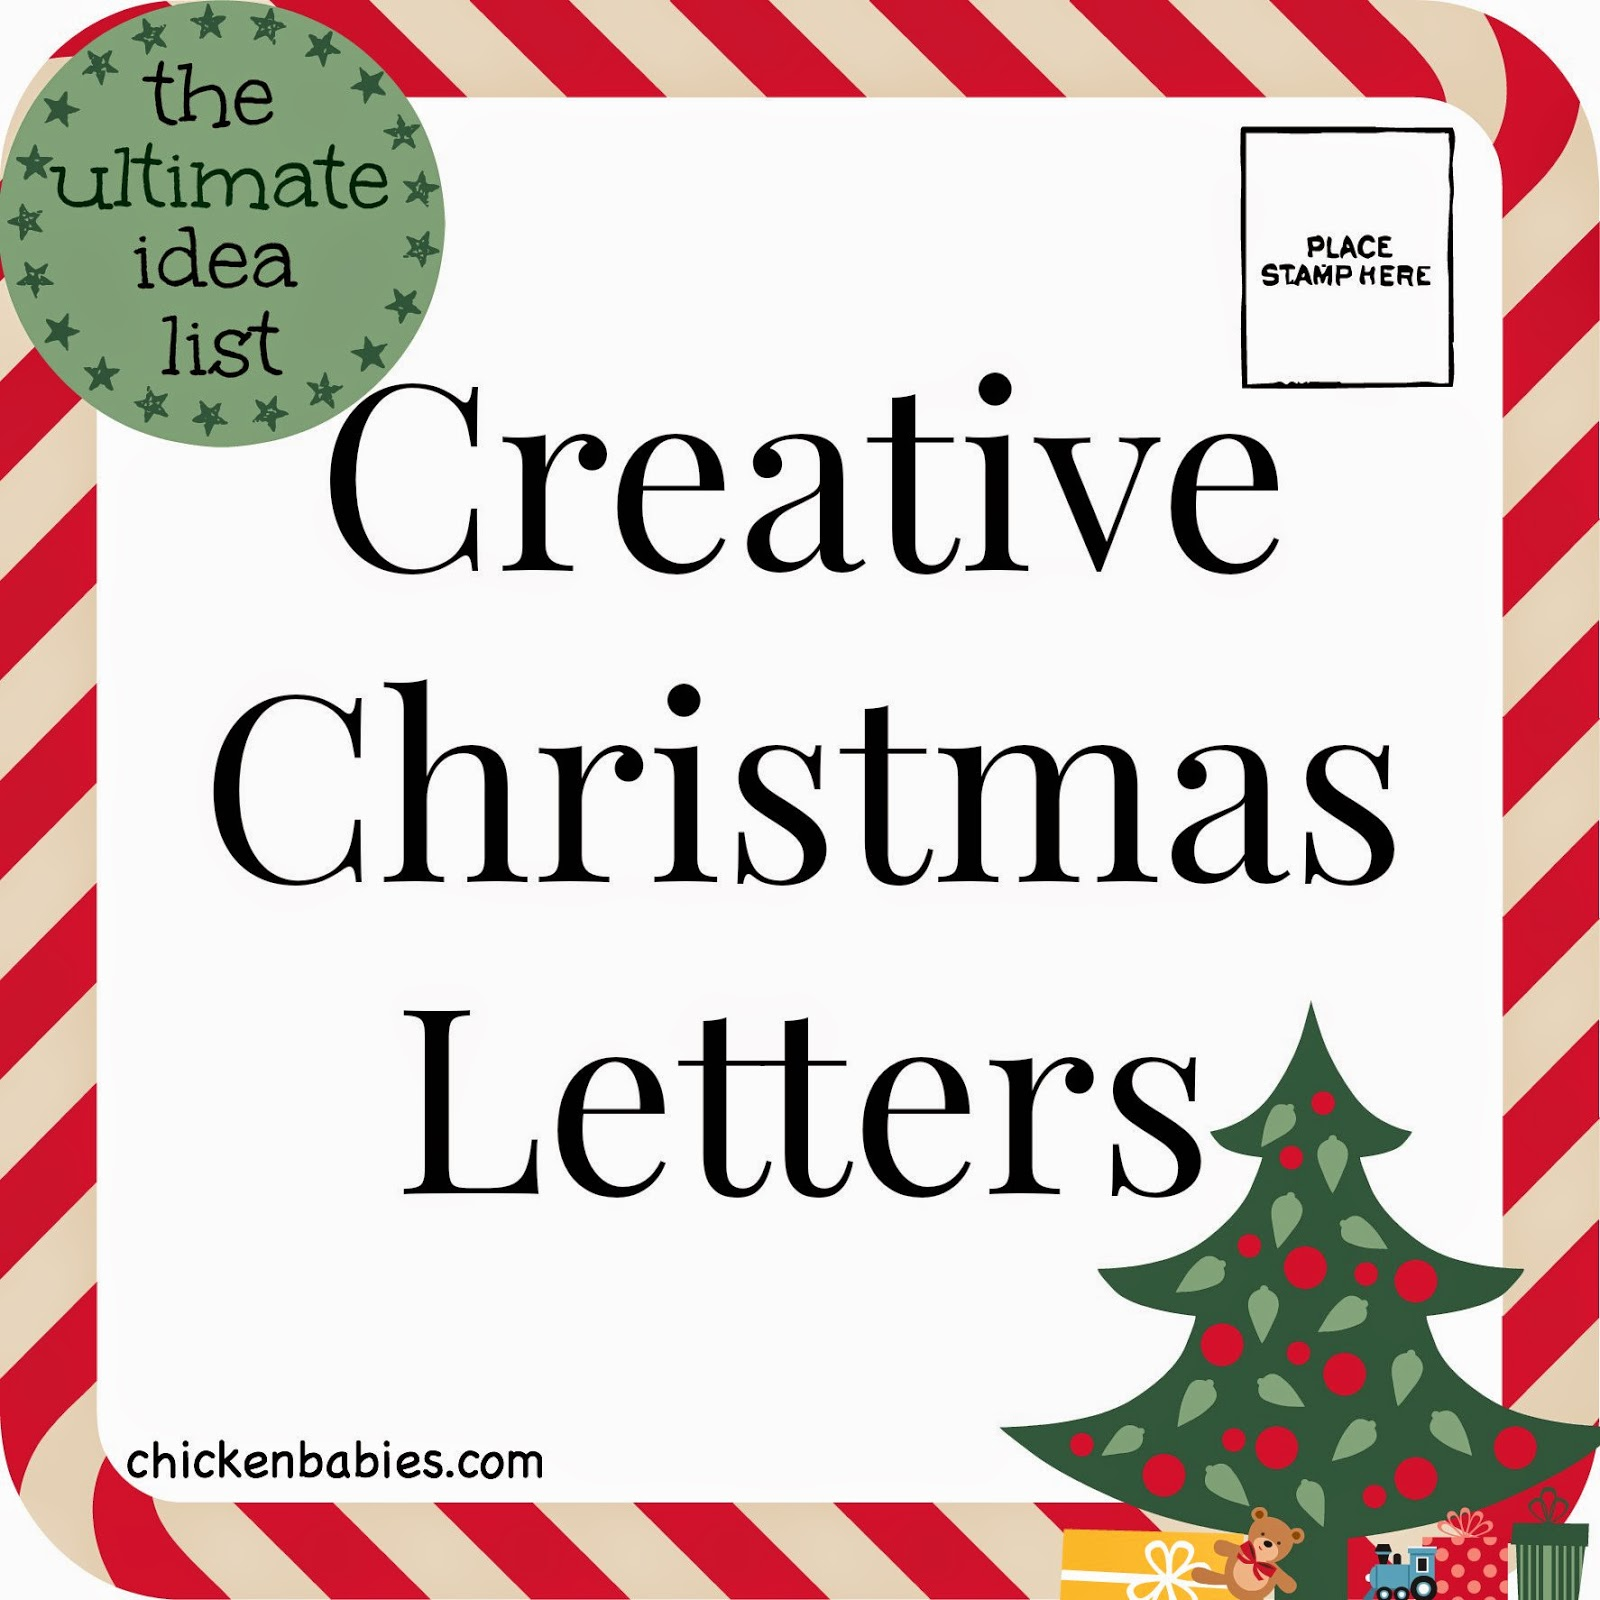 Sample Christmas Letters To Family And Friends.How To Write A Family Christmas Letter Thecannonball Org